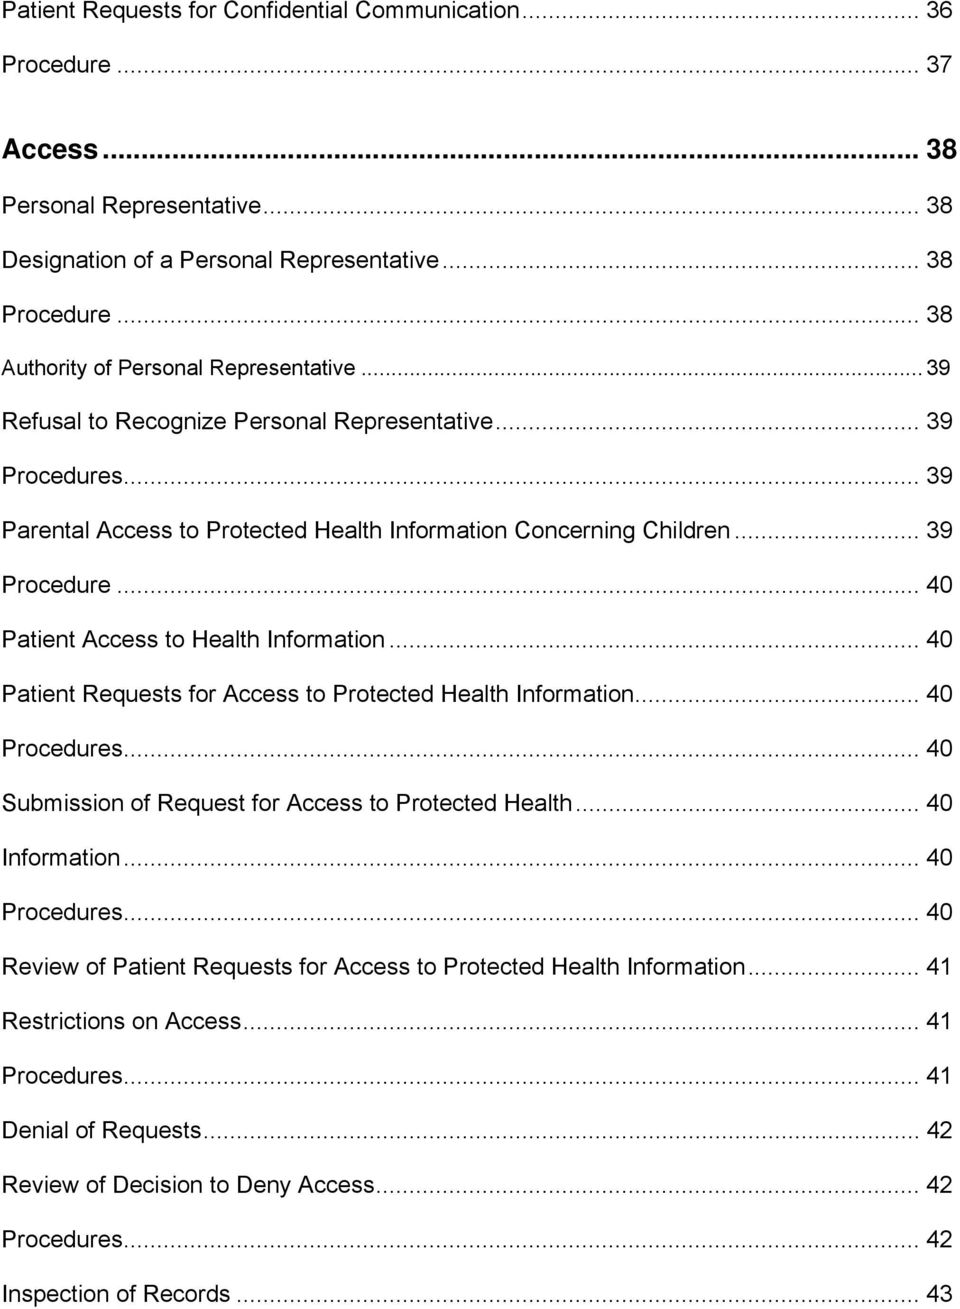 .. 40 Patient Requests for Access to Protected Health Information... 40 Procedures... 40 Submission of Request for Access to Protected Health... 40 Information... 40 Procedures... 40 Review of Patient Requests for Access to Protected Health Information.